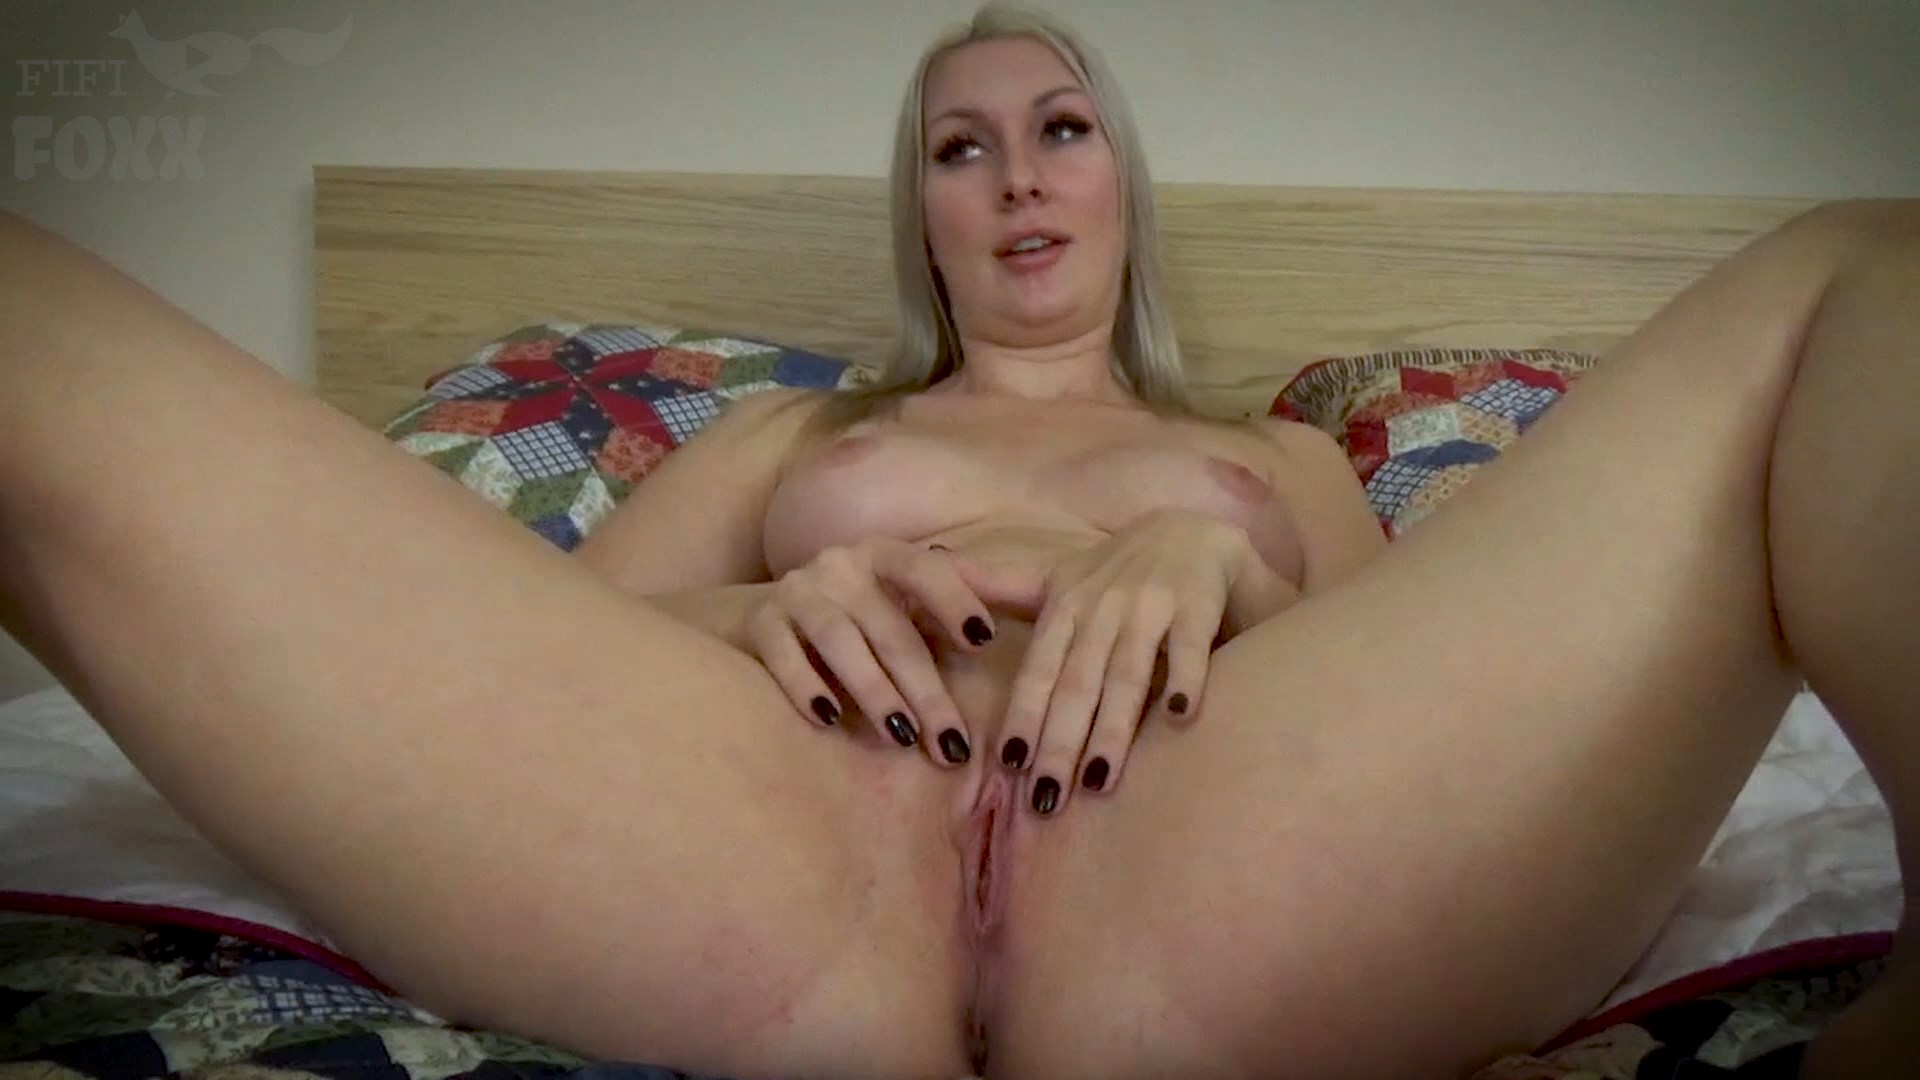 Fifi Foxx Fantasies - Sydney Paige - Mommy's Perverted Game: Whoever Cums First Wins - Son & His Friends, POV - HD 1080p